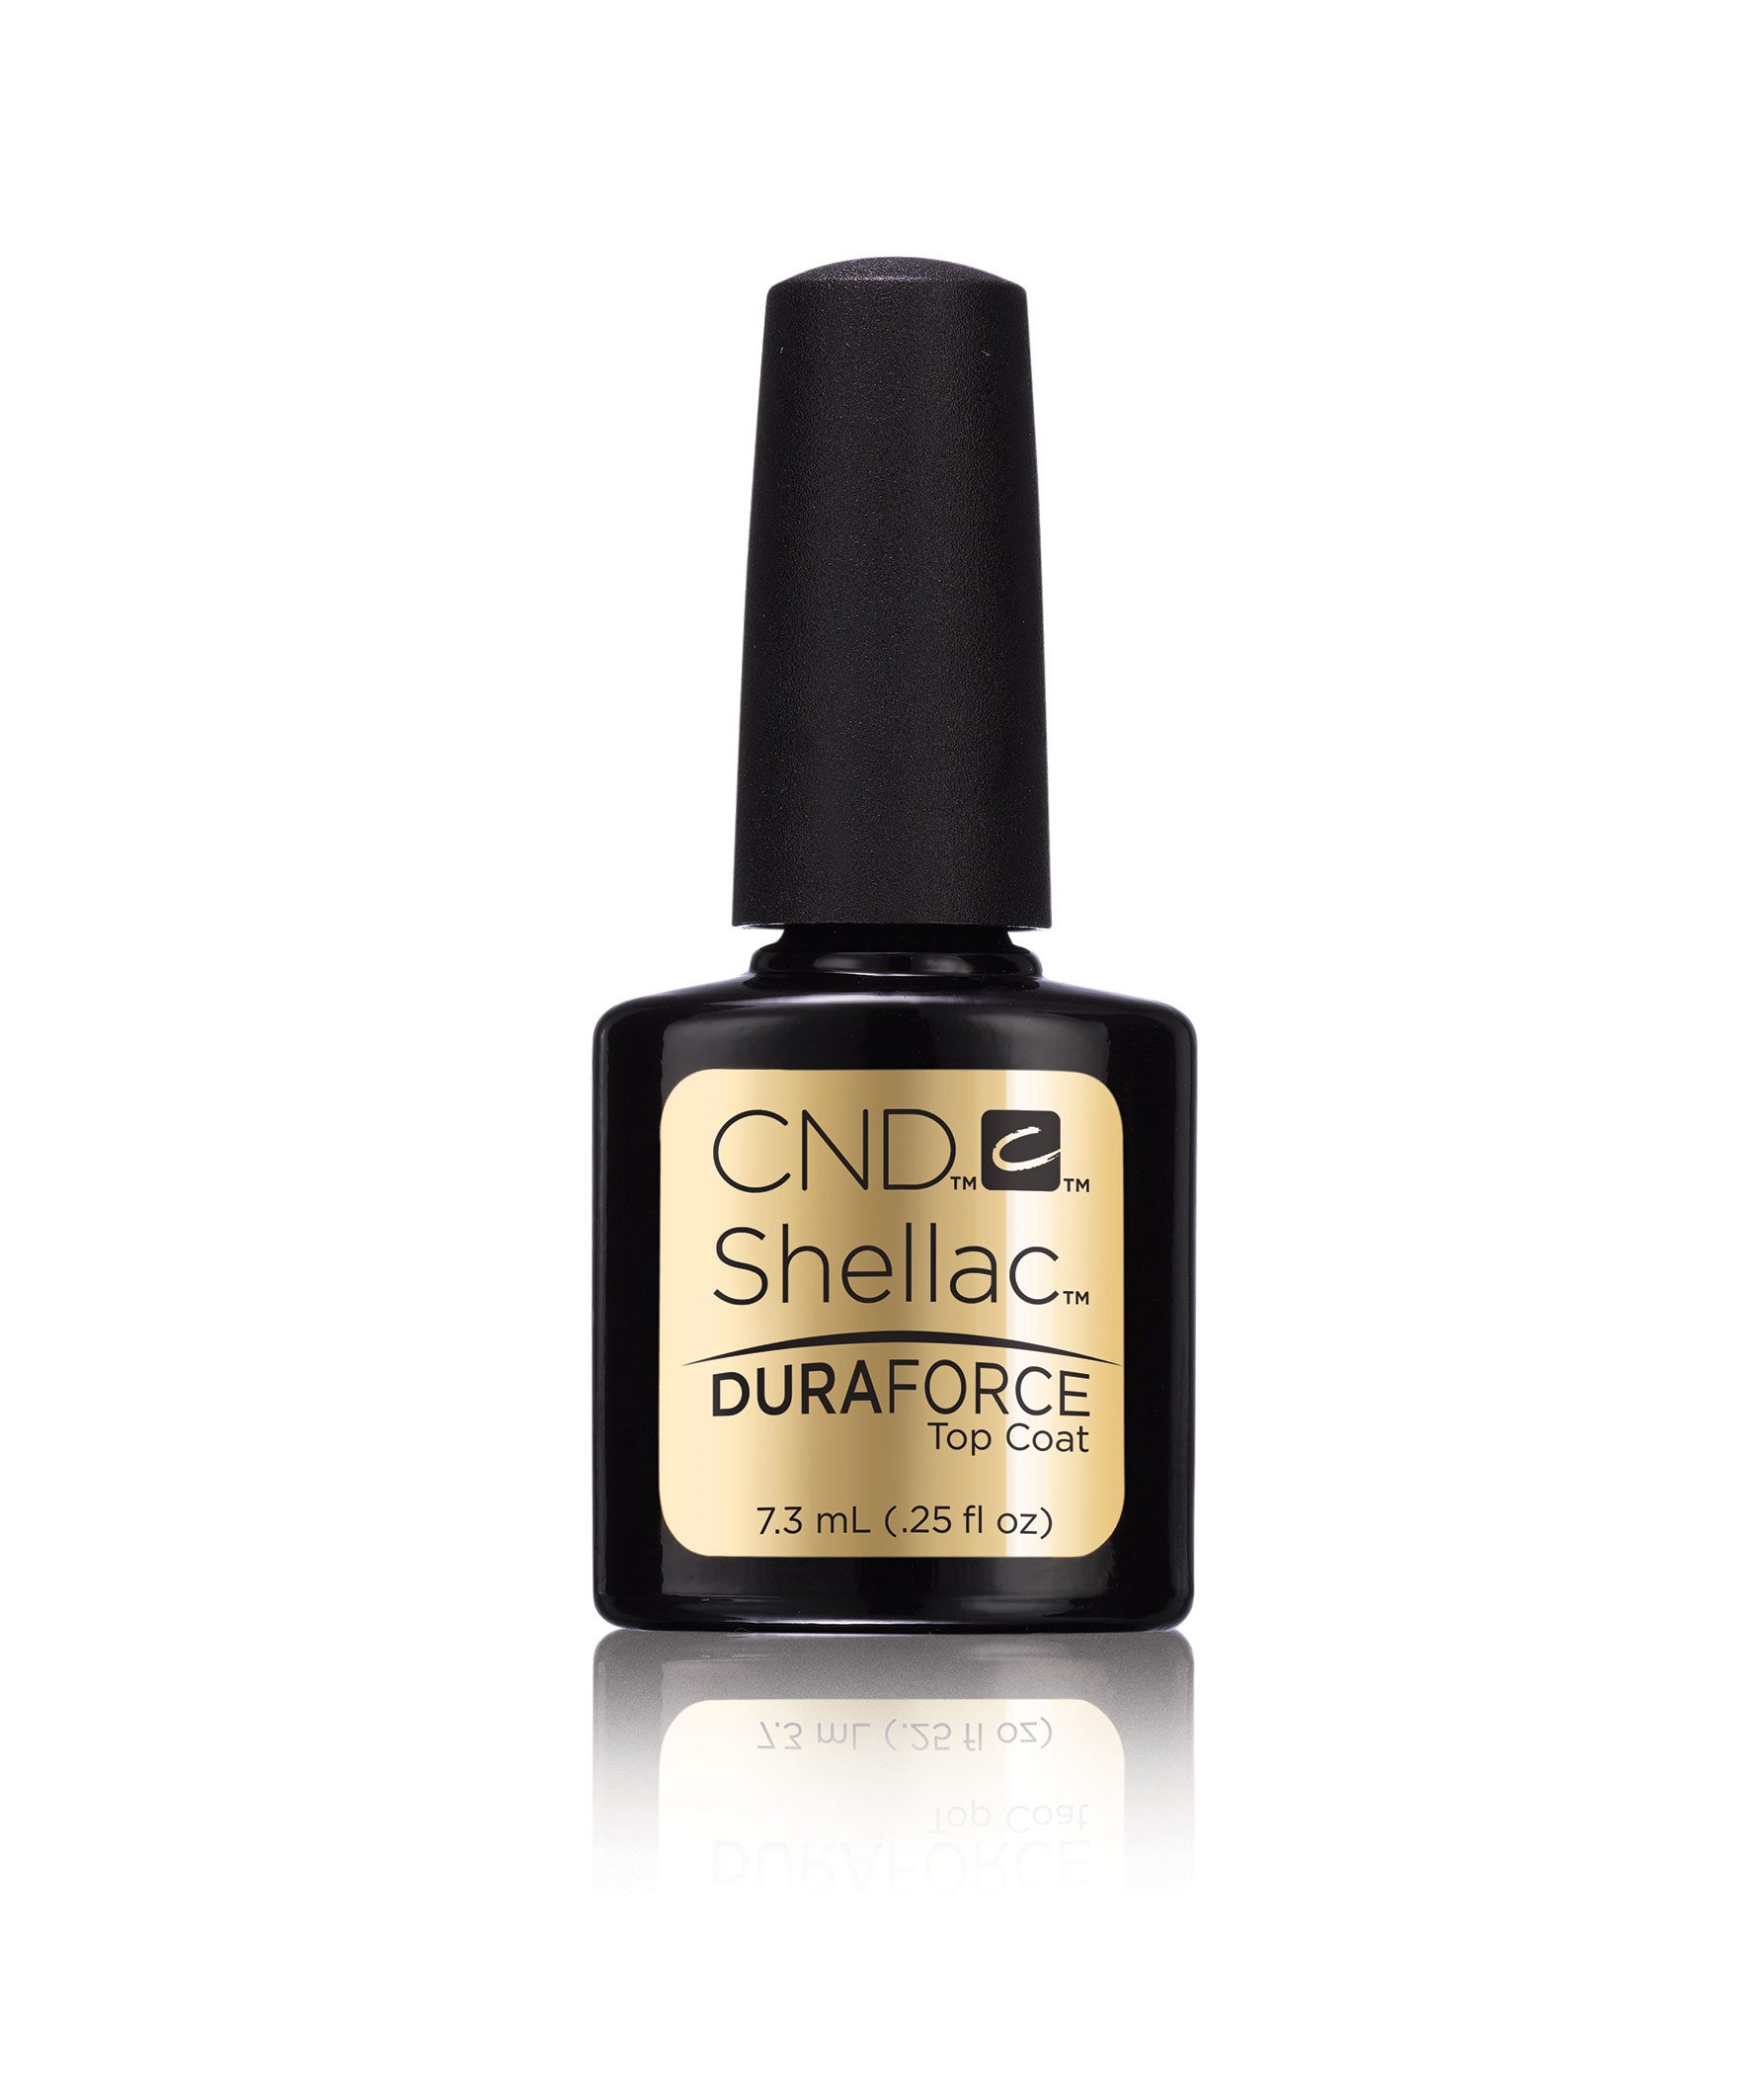 CND Покрытие верхнее /CND Shellac Duraforce Top Coat 7,3 мл cnd типсы 7 cnd clear performance 17338 50 шт